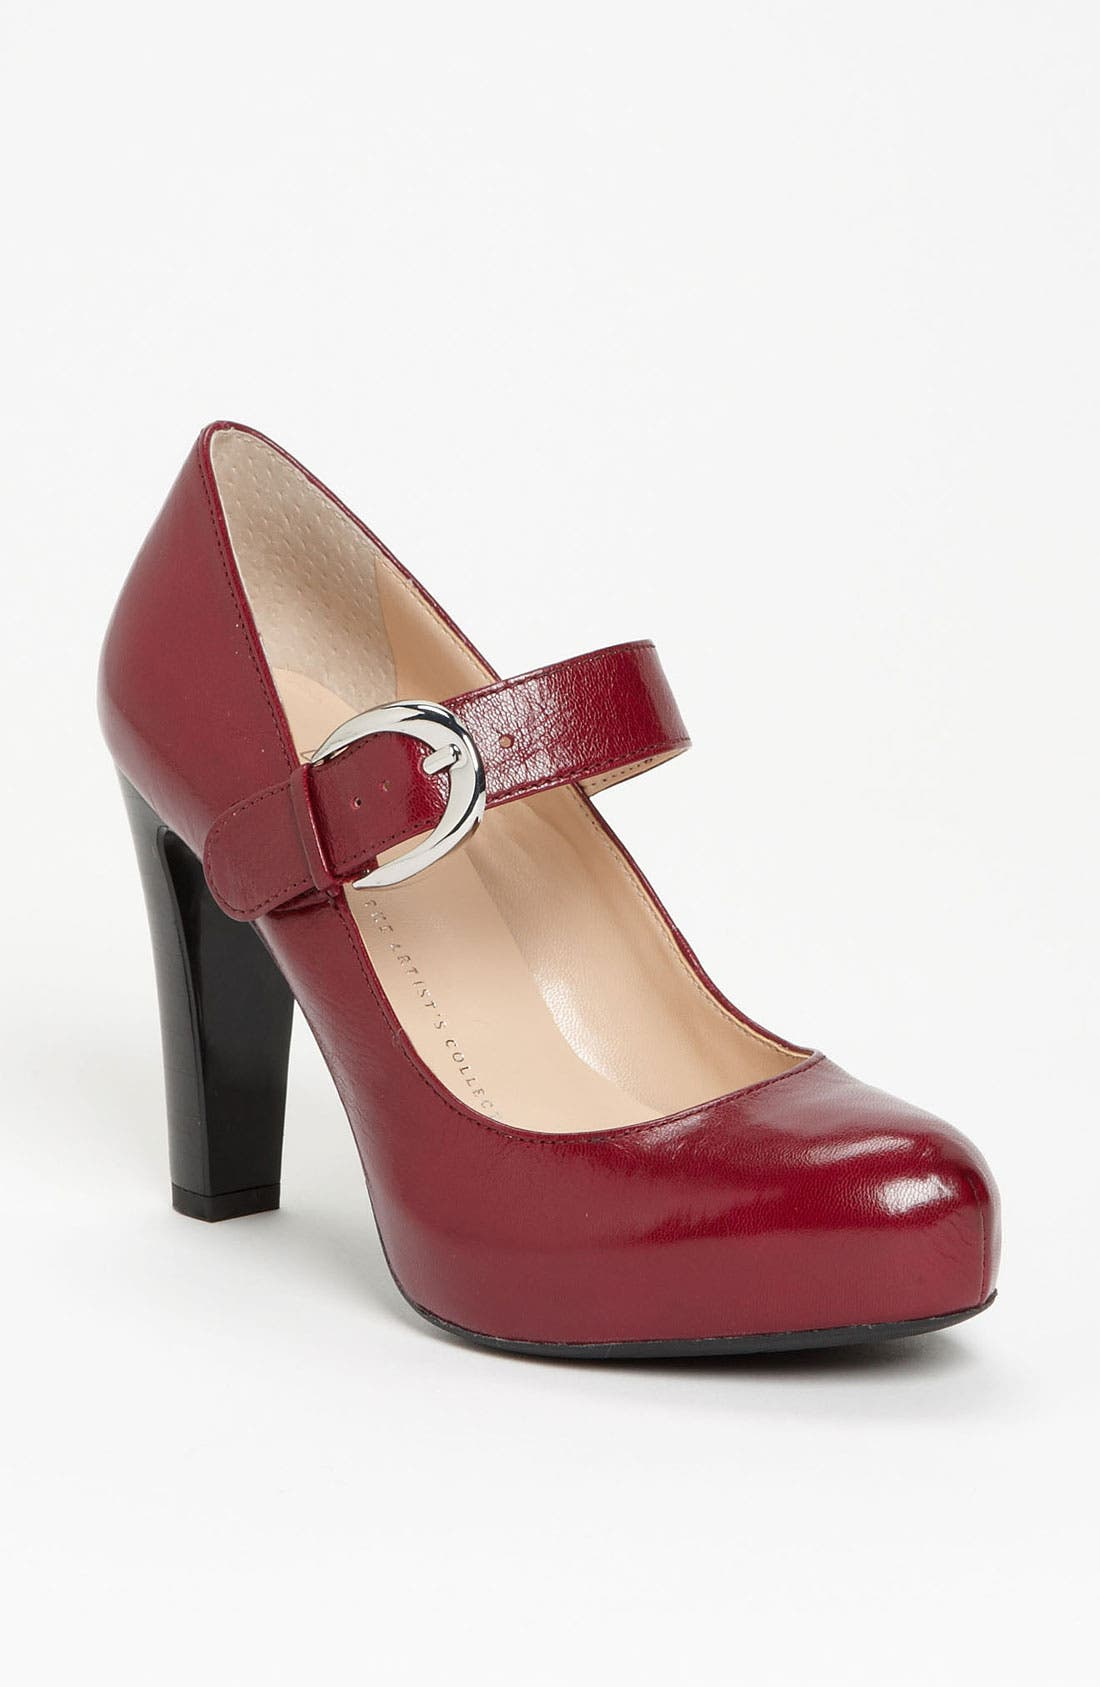 Main Image - Franco Sarto 'Leticia' Pump (Special Purchase)